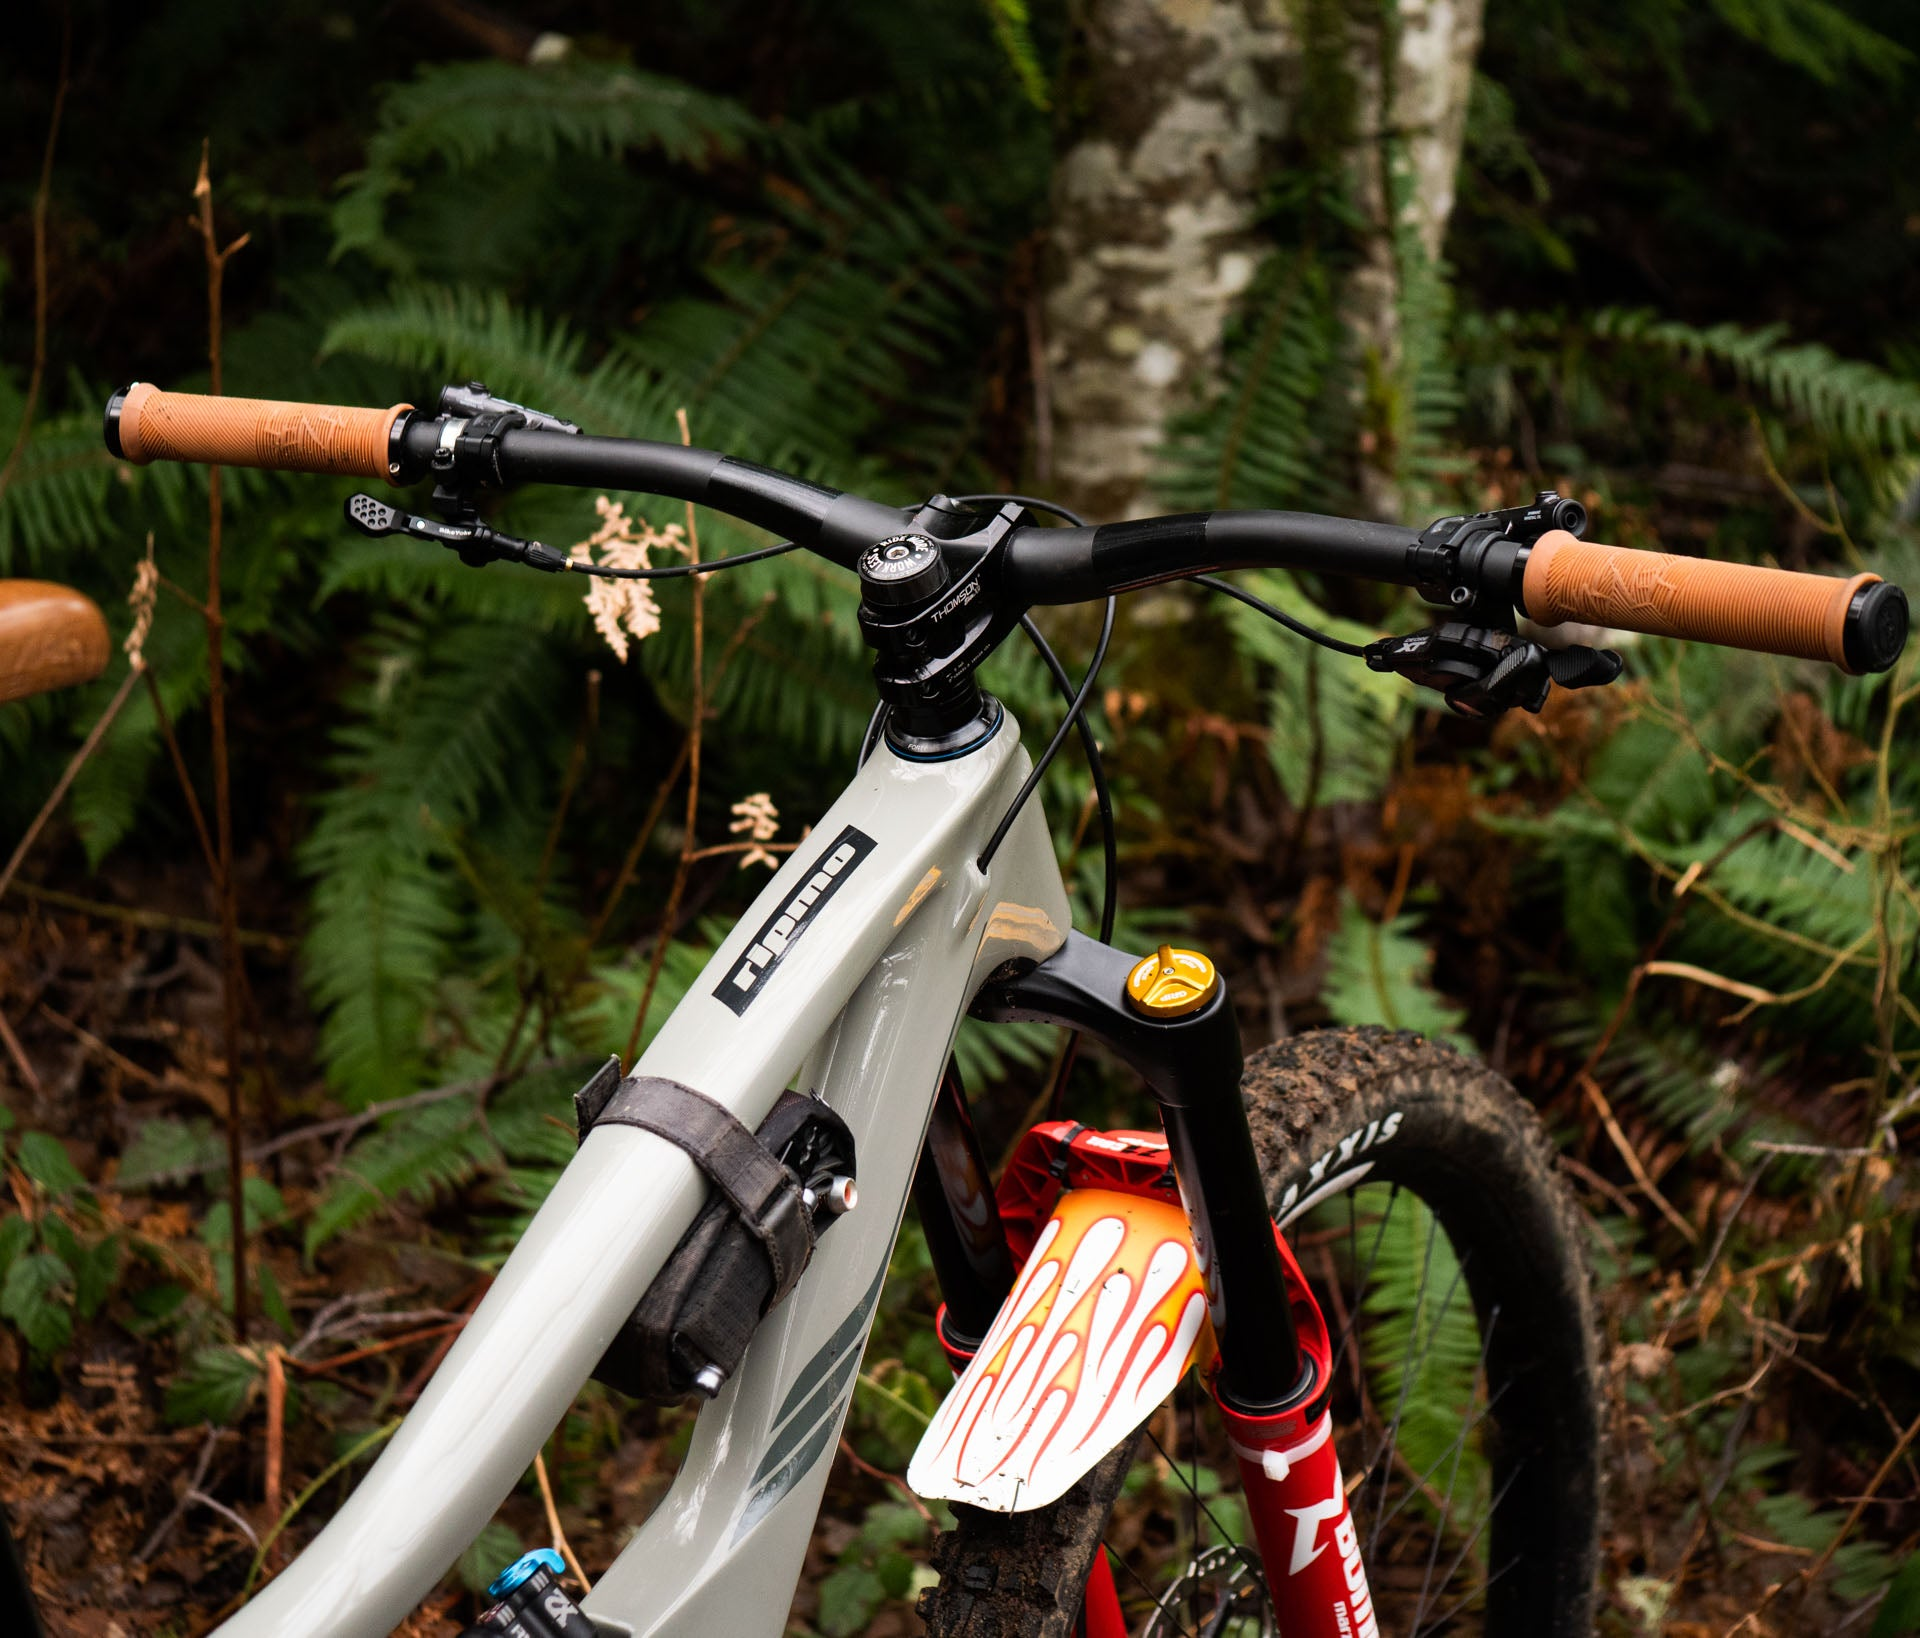 A degree slacker head angle, now 64.9, and a few other tweaks make what was an amazing bike even better. The new Ibis Ripmo V2